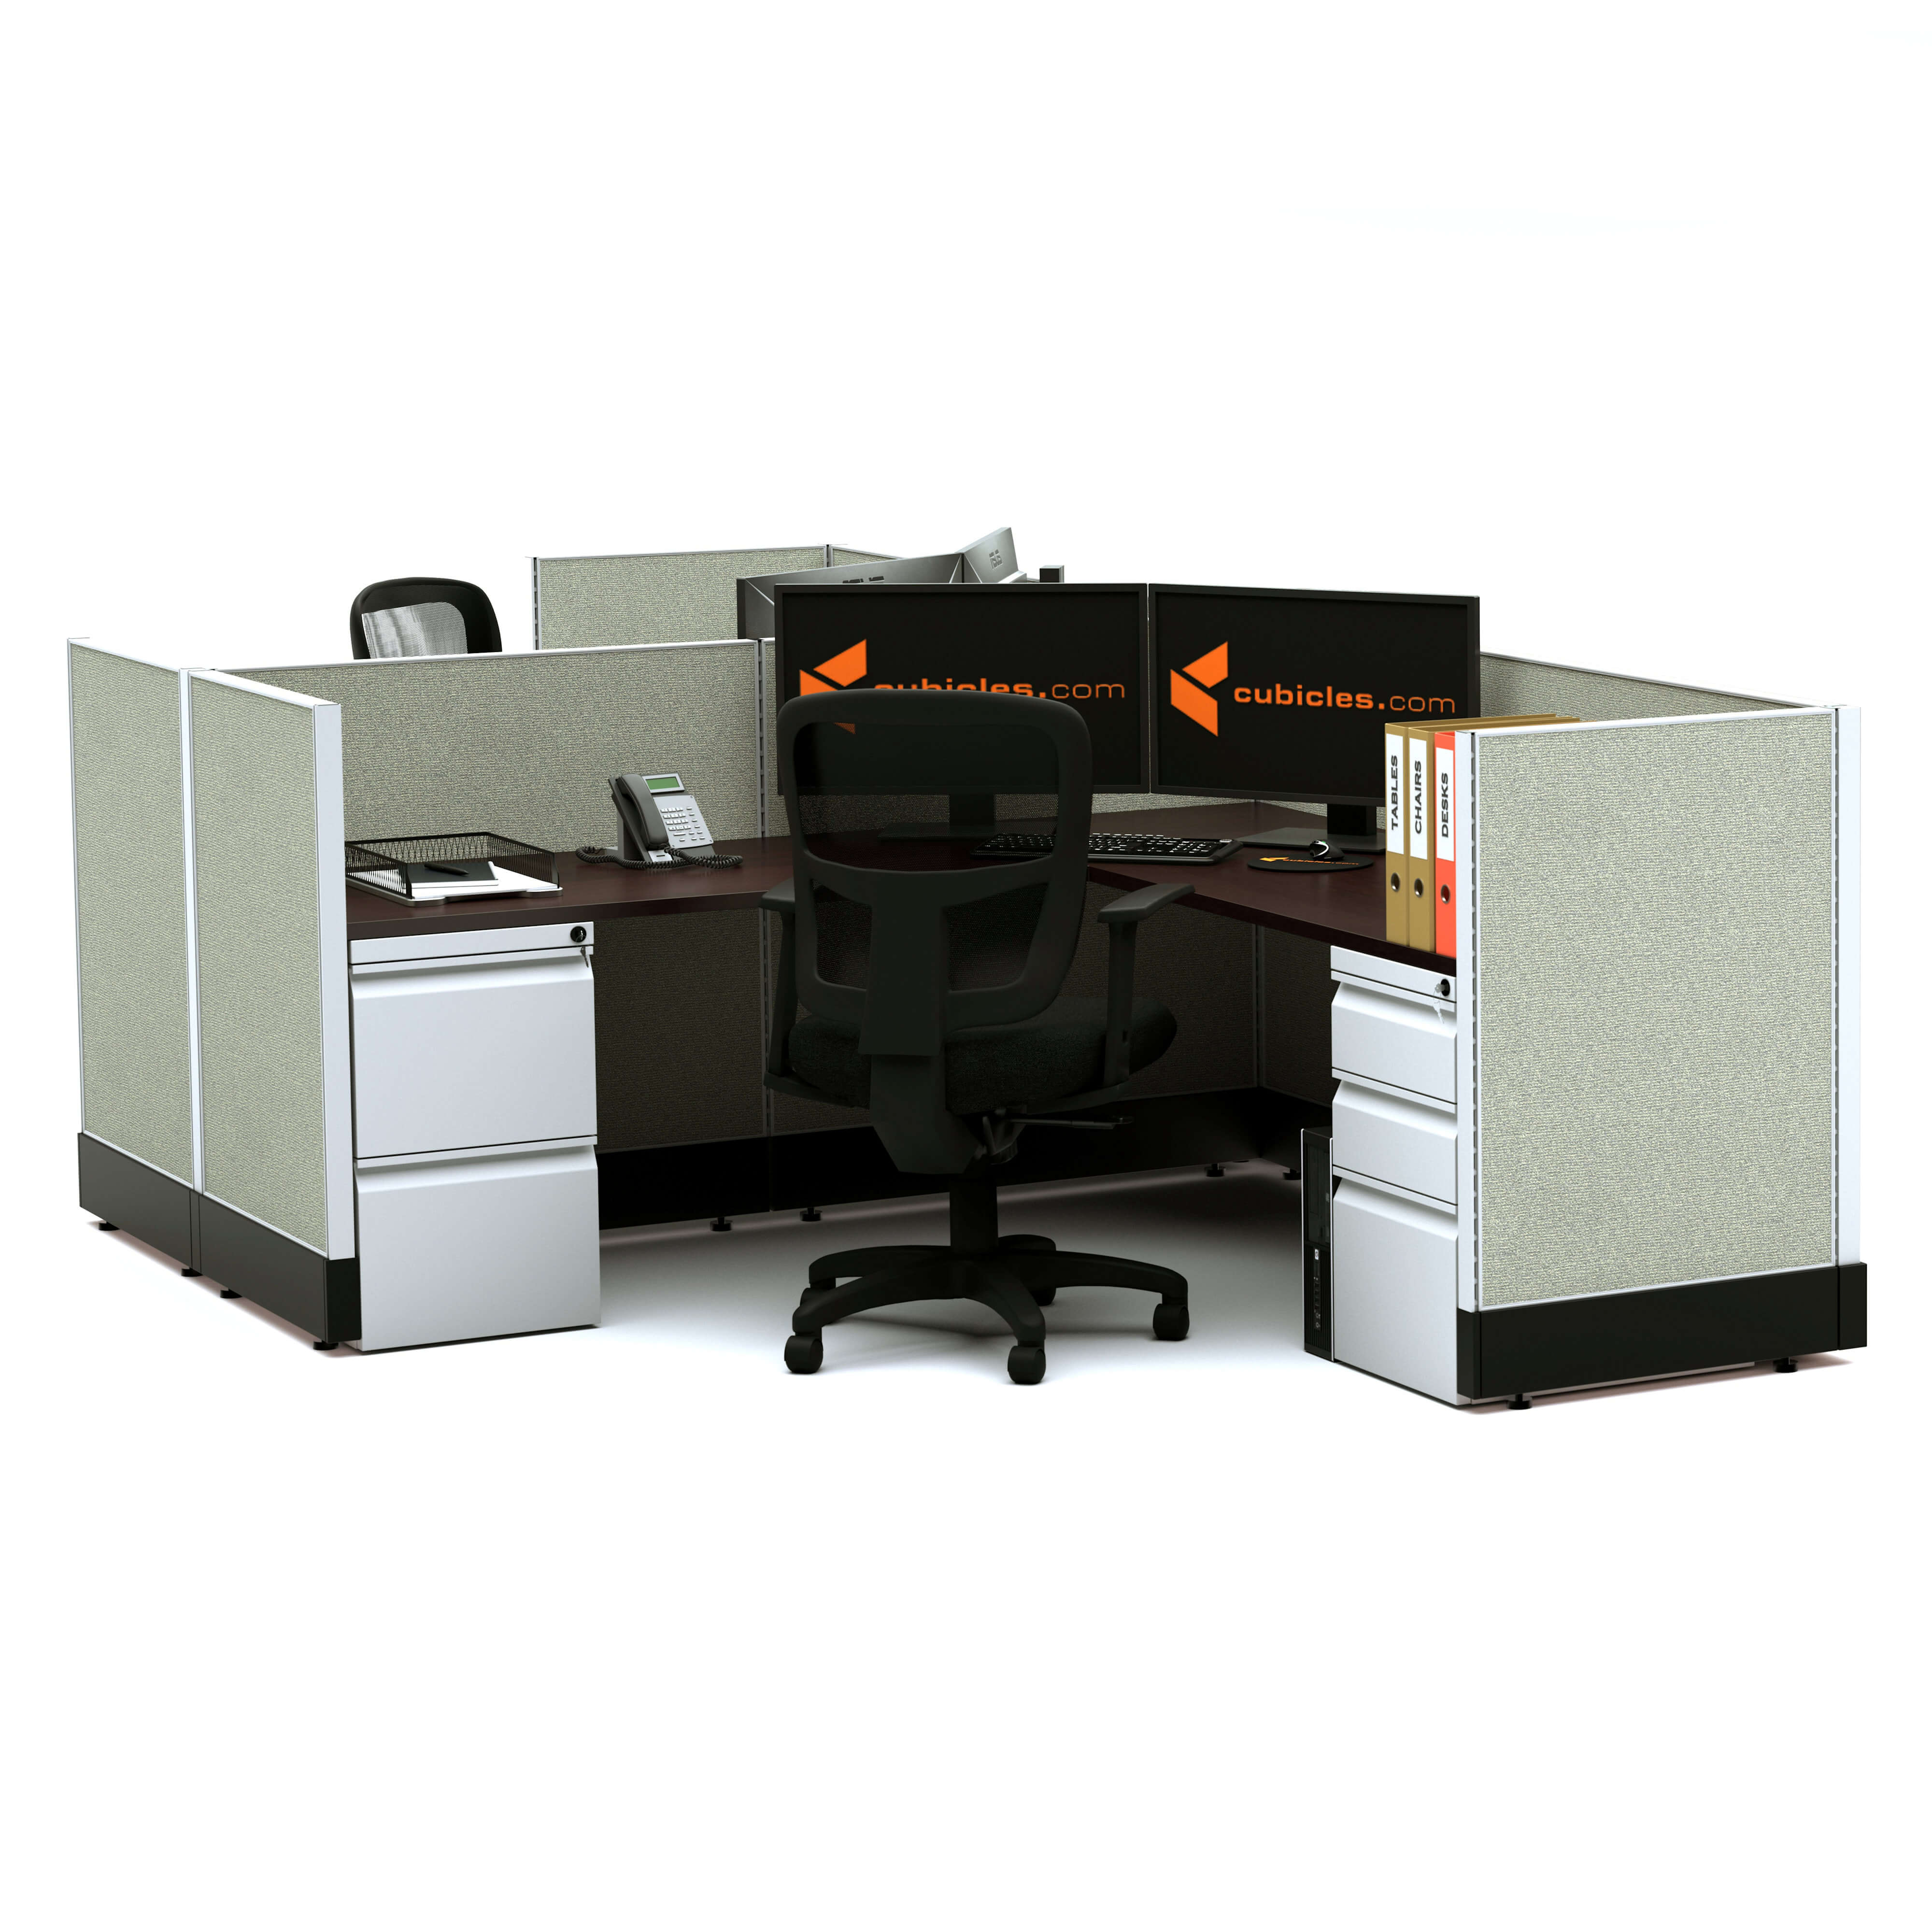 modular-office-furniture-system-furniture-39-2pack-clustered-unpowered.jpg